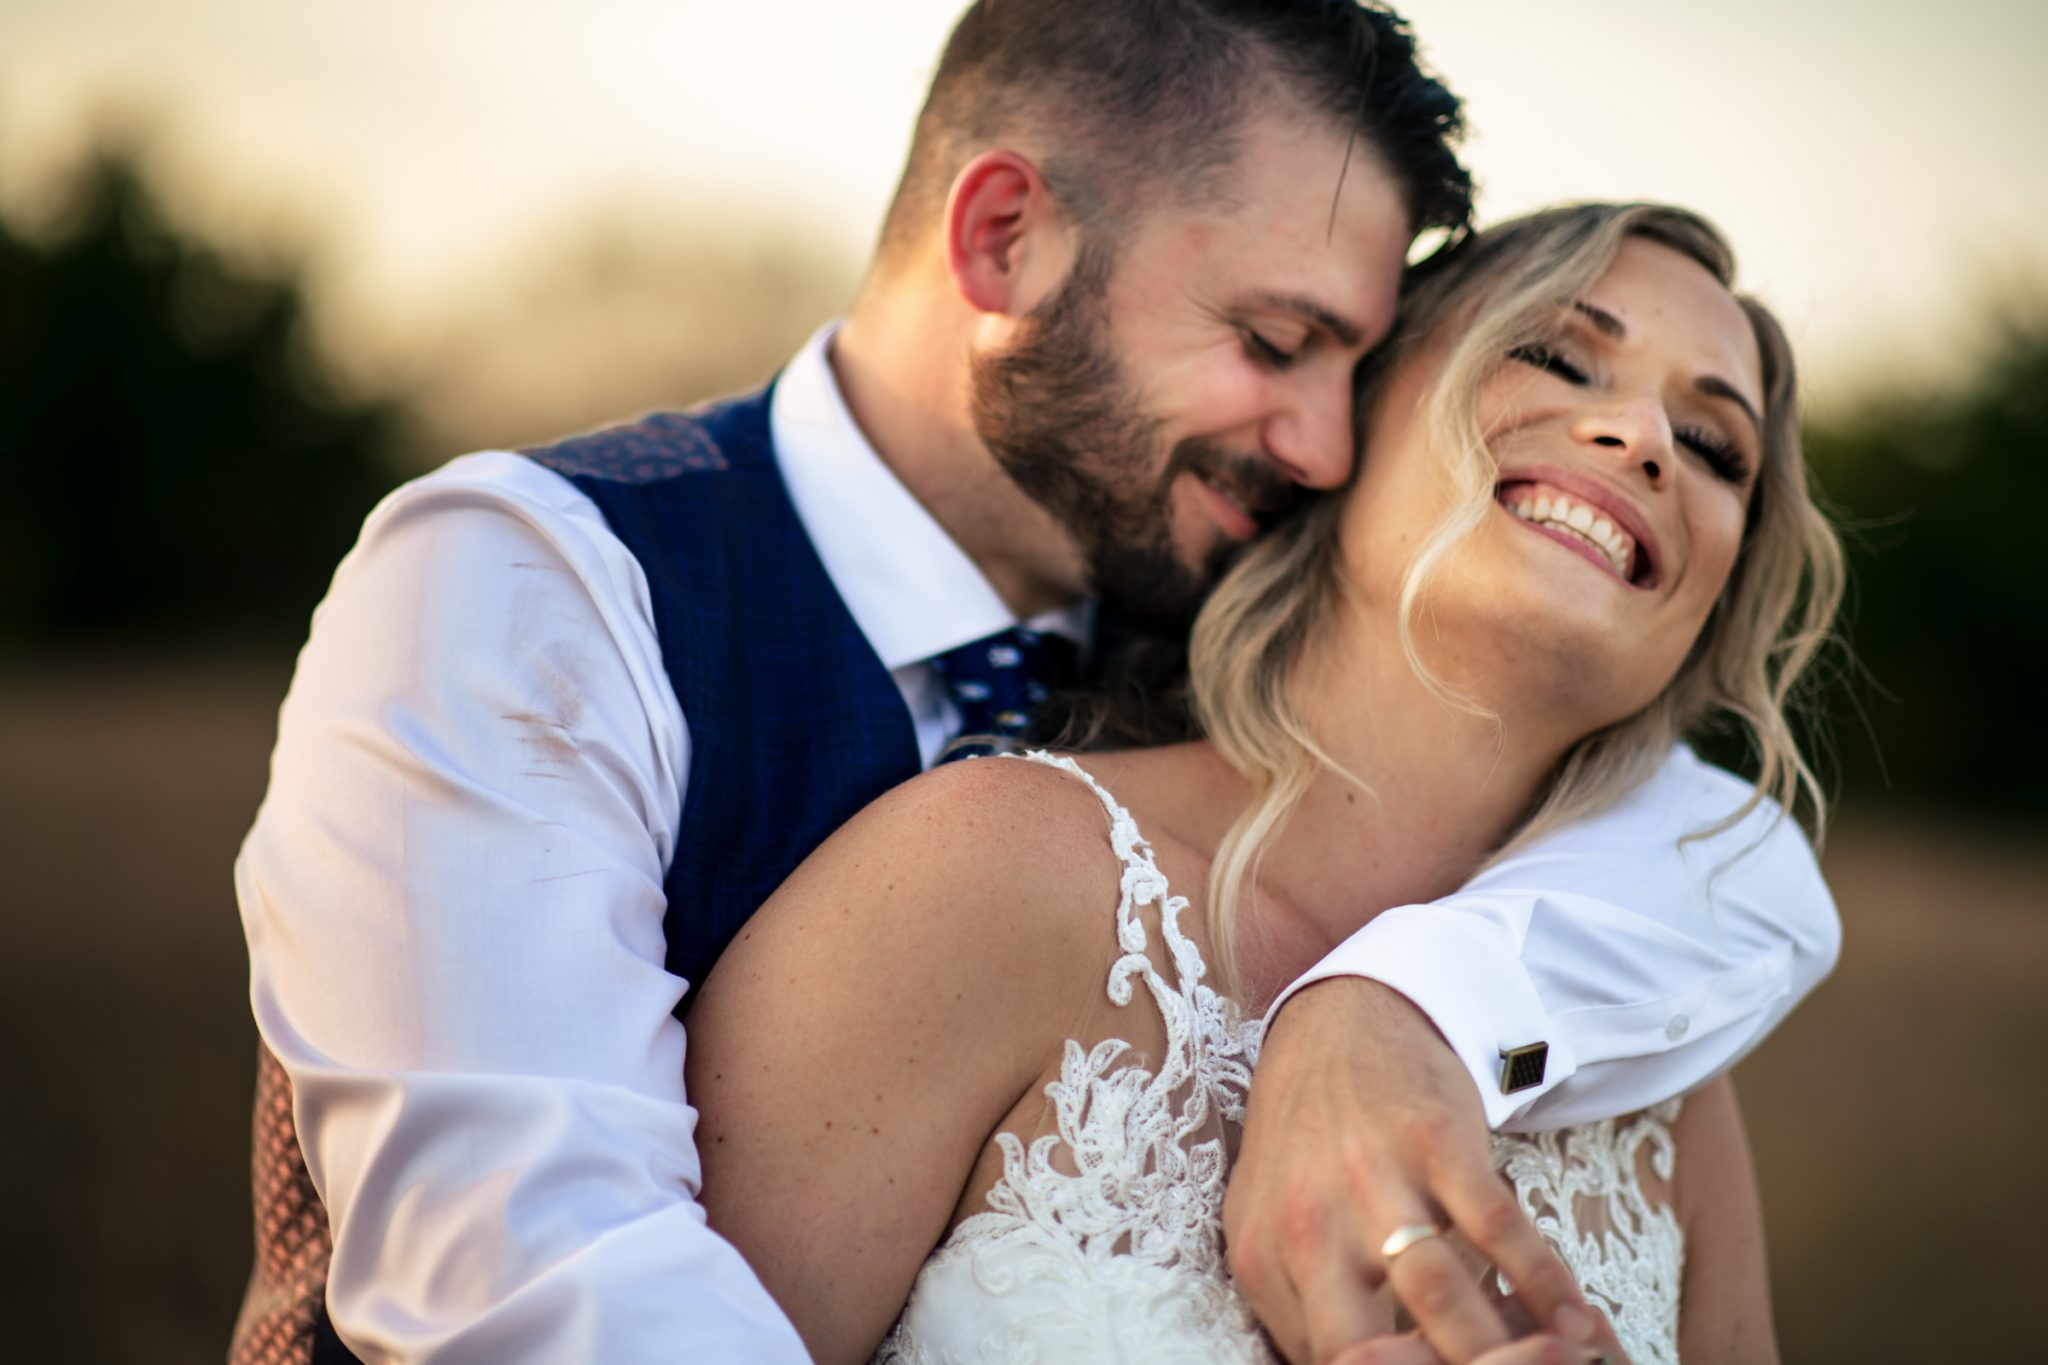 bride and groom in an intimate hug